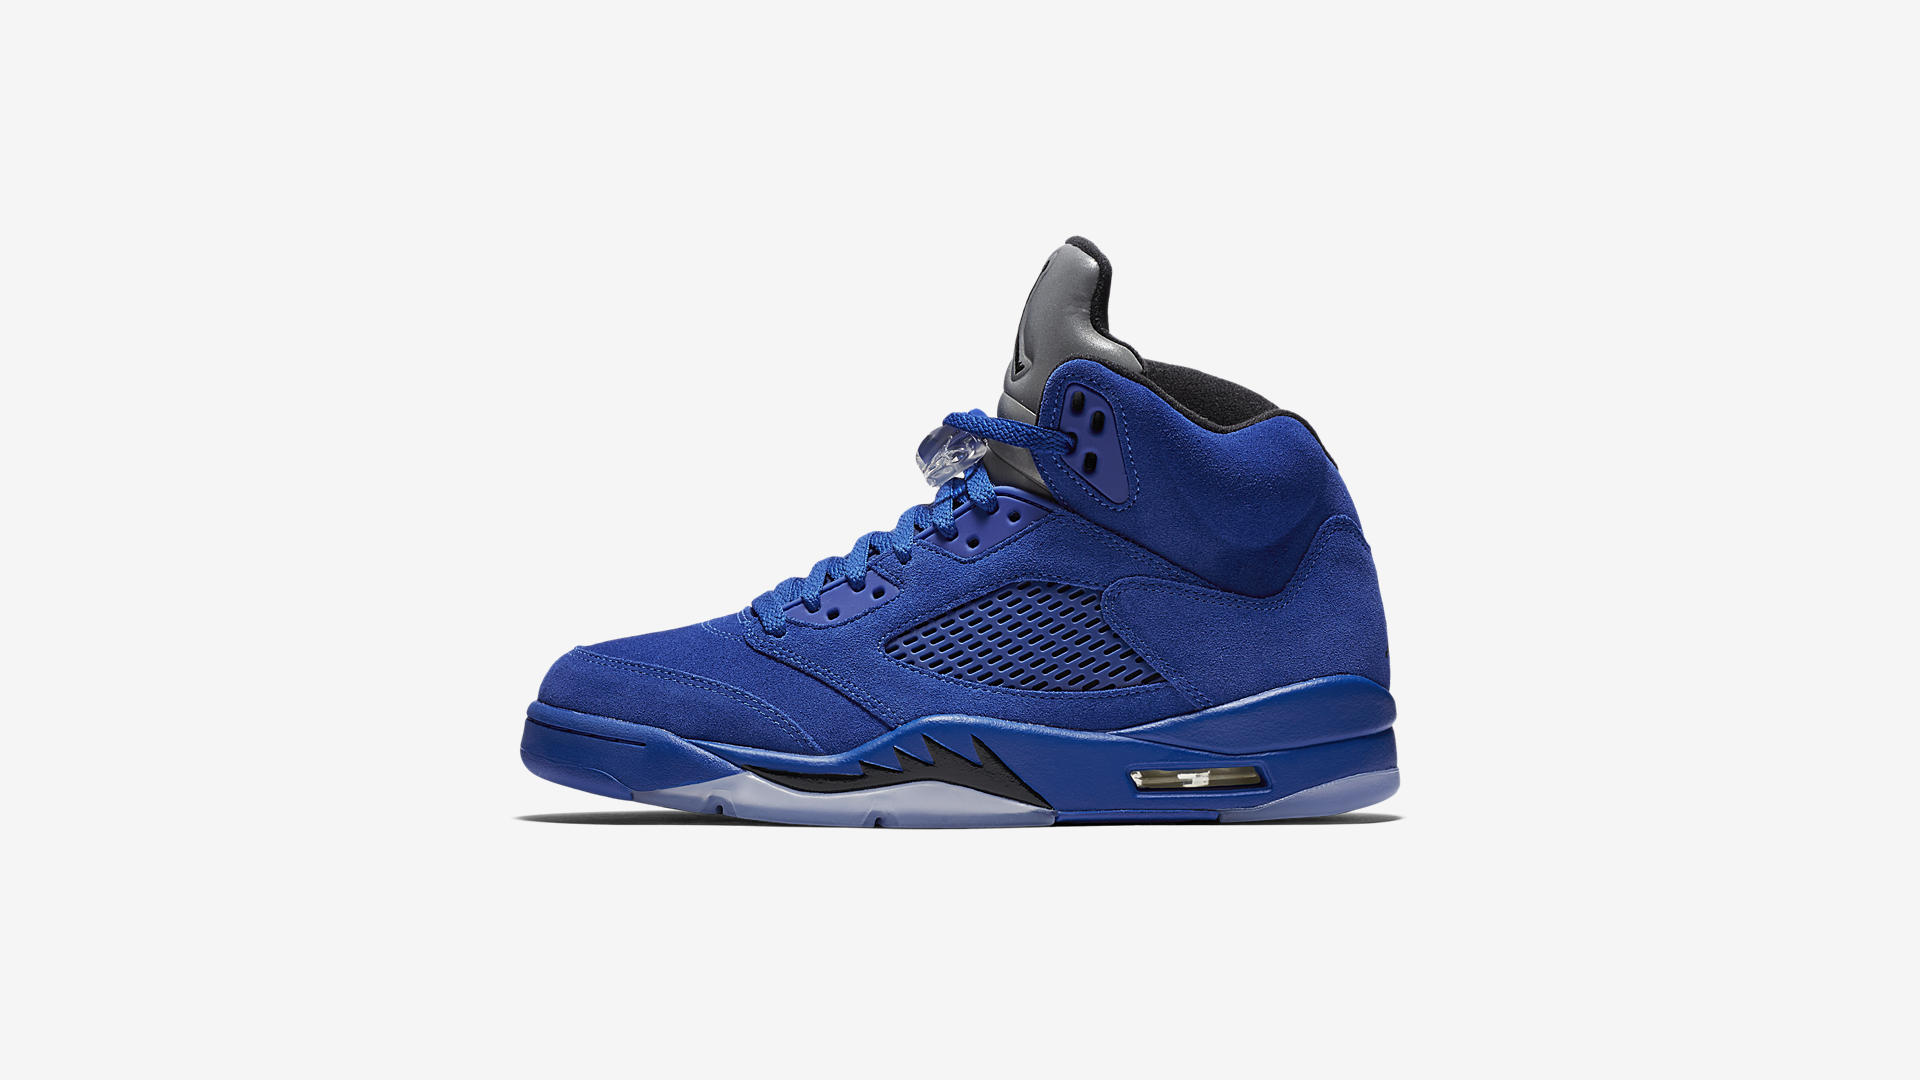 Air Jordan 5 (V) Retro Color  Game Royal Game Royal-Black Style   136027-401. Release Date  09 30 2017. Price   190.00. air jordan v flight  suit ... 3fa3c0ef1